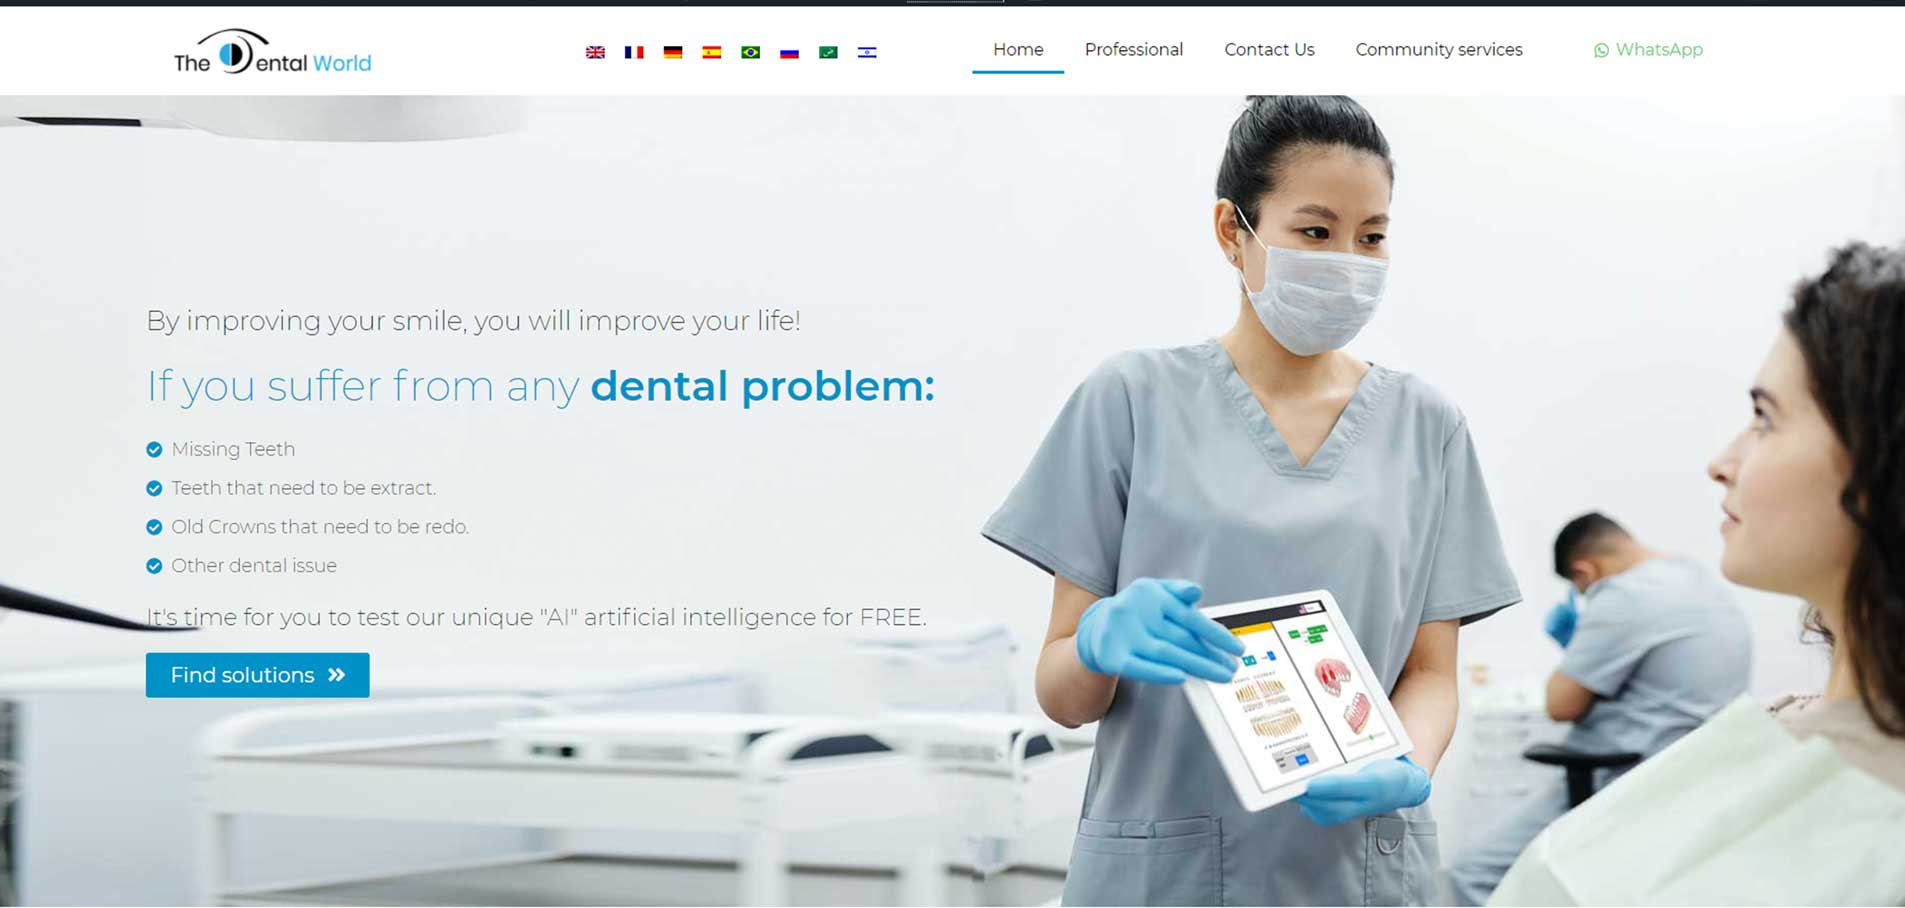 TheDentalWorld landing page